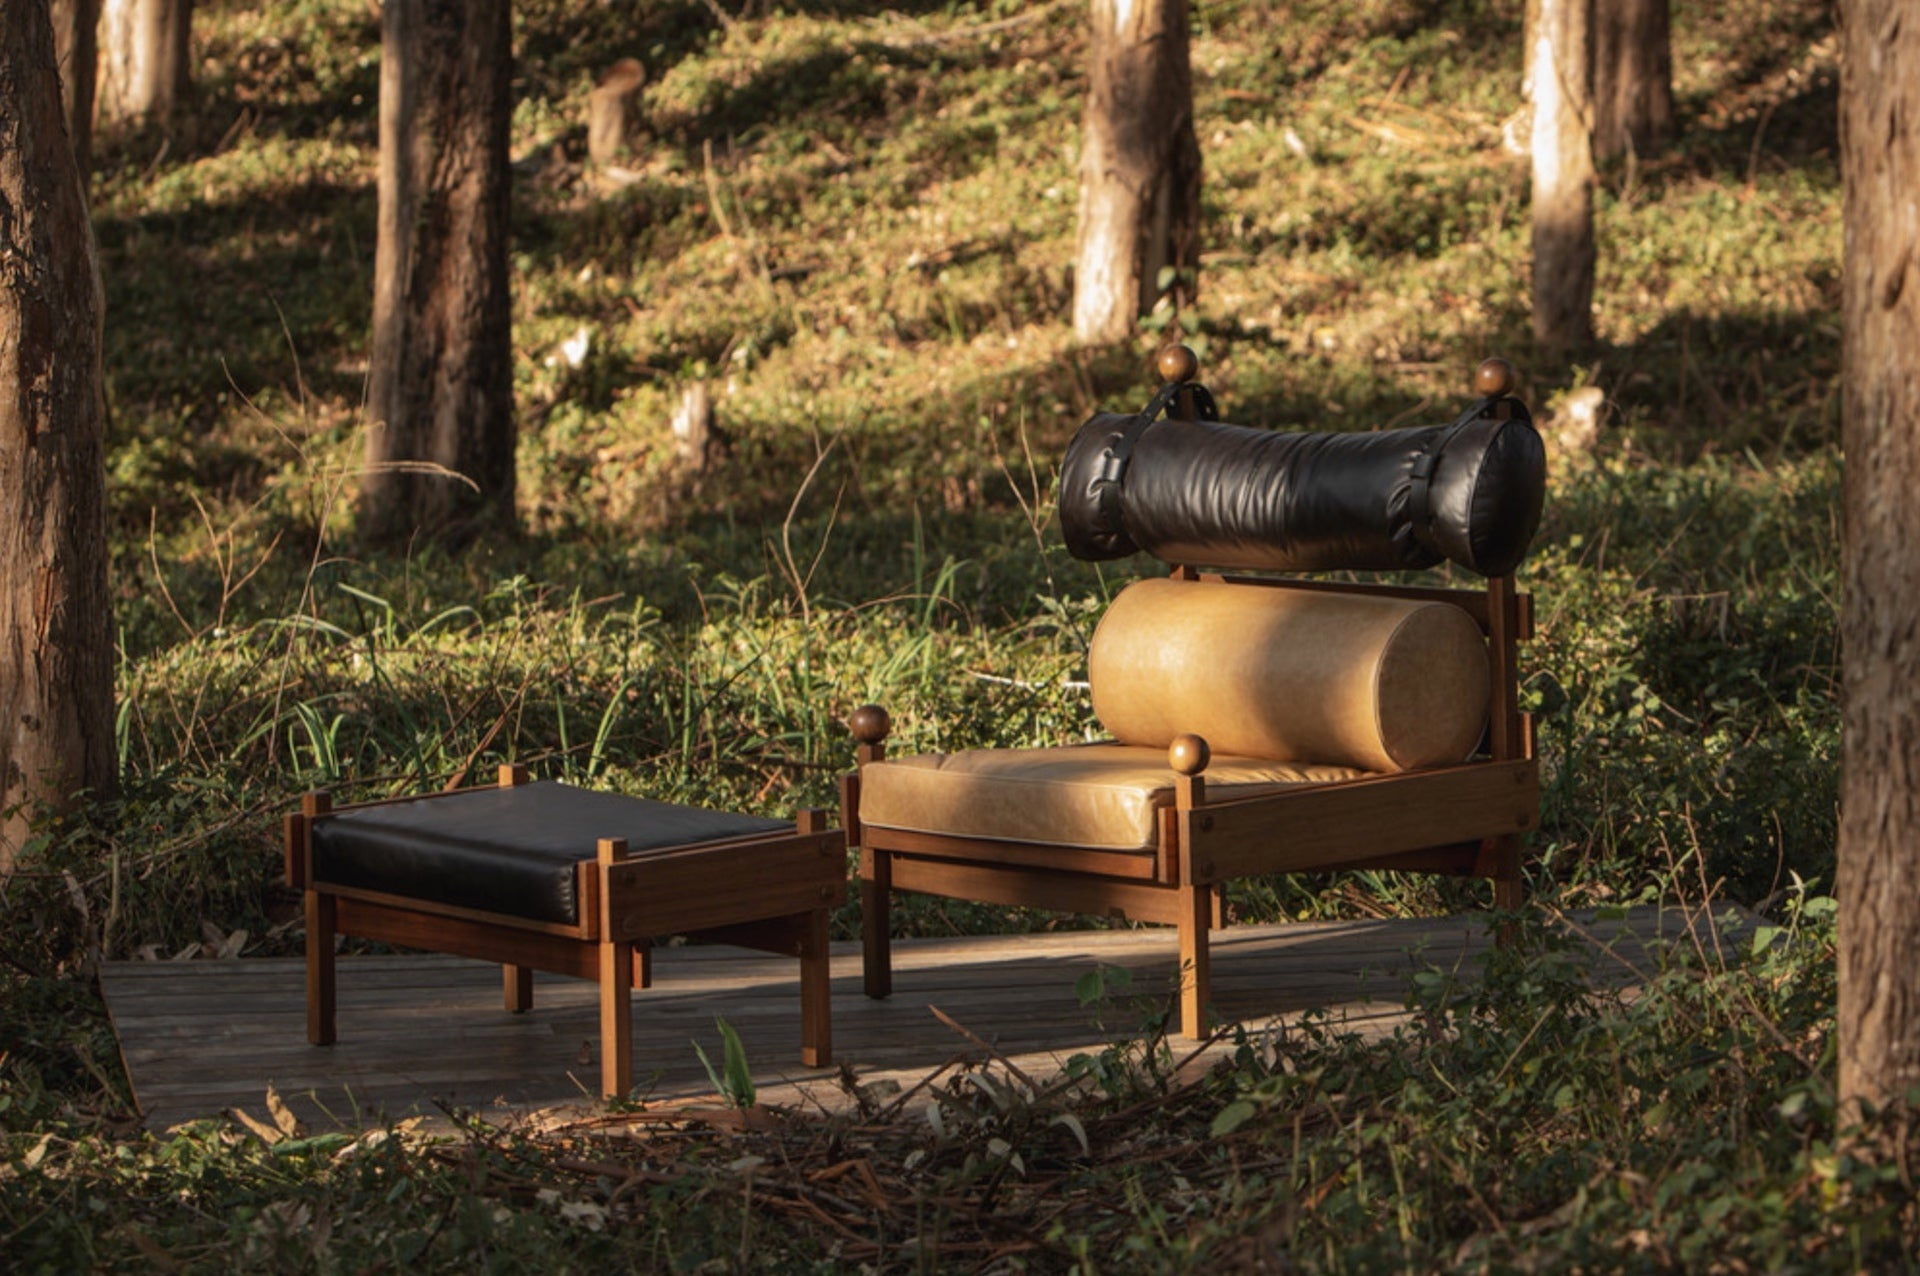 """Tonico Lounge Chair by Sergio Rodrigues, 1963. """"I love the work of Sergio Rodrigues,"""" Fogale says, """"and this particular image for me illustrates the perfect ingredients for South American design: honest materials, comfort, and nature."""" Photo © Espasso"""